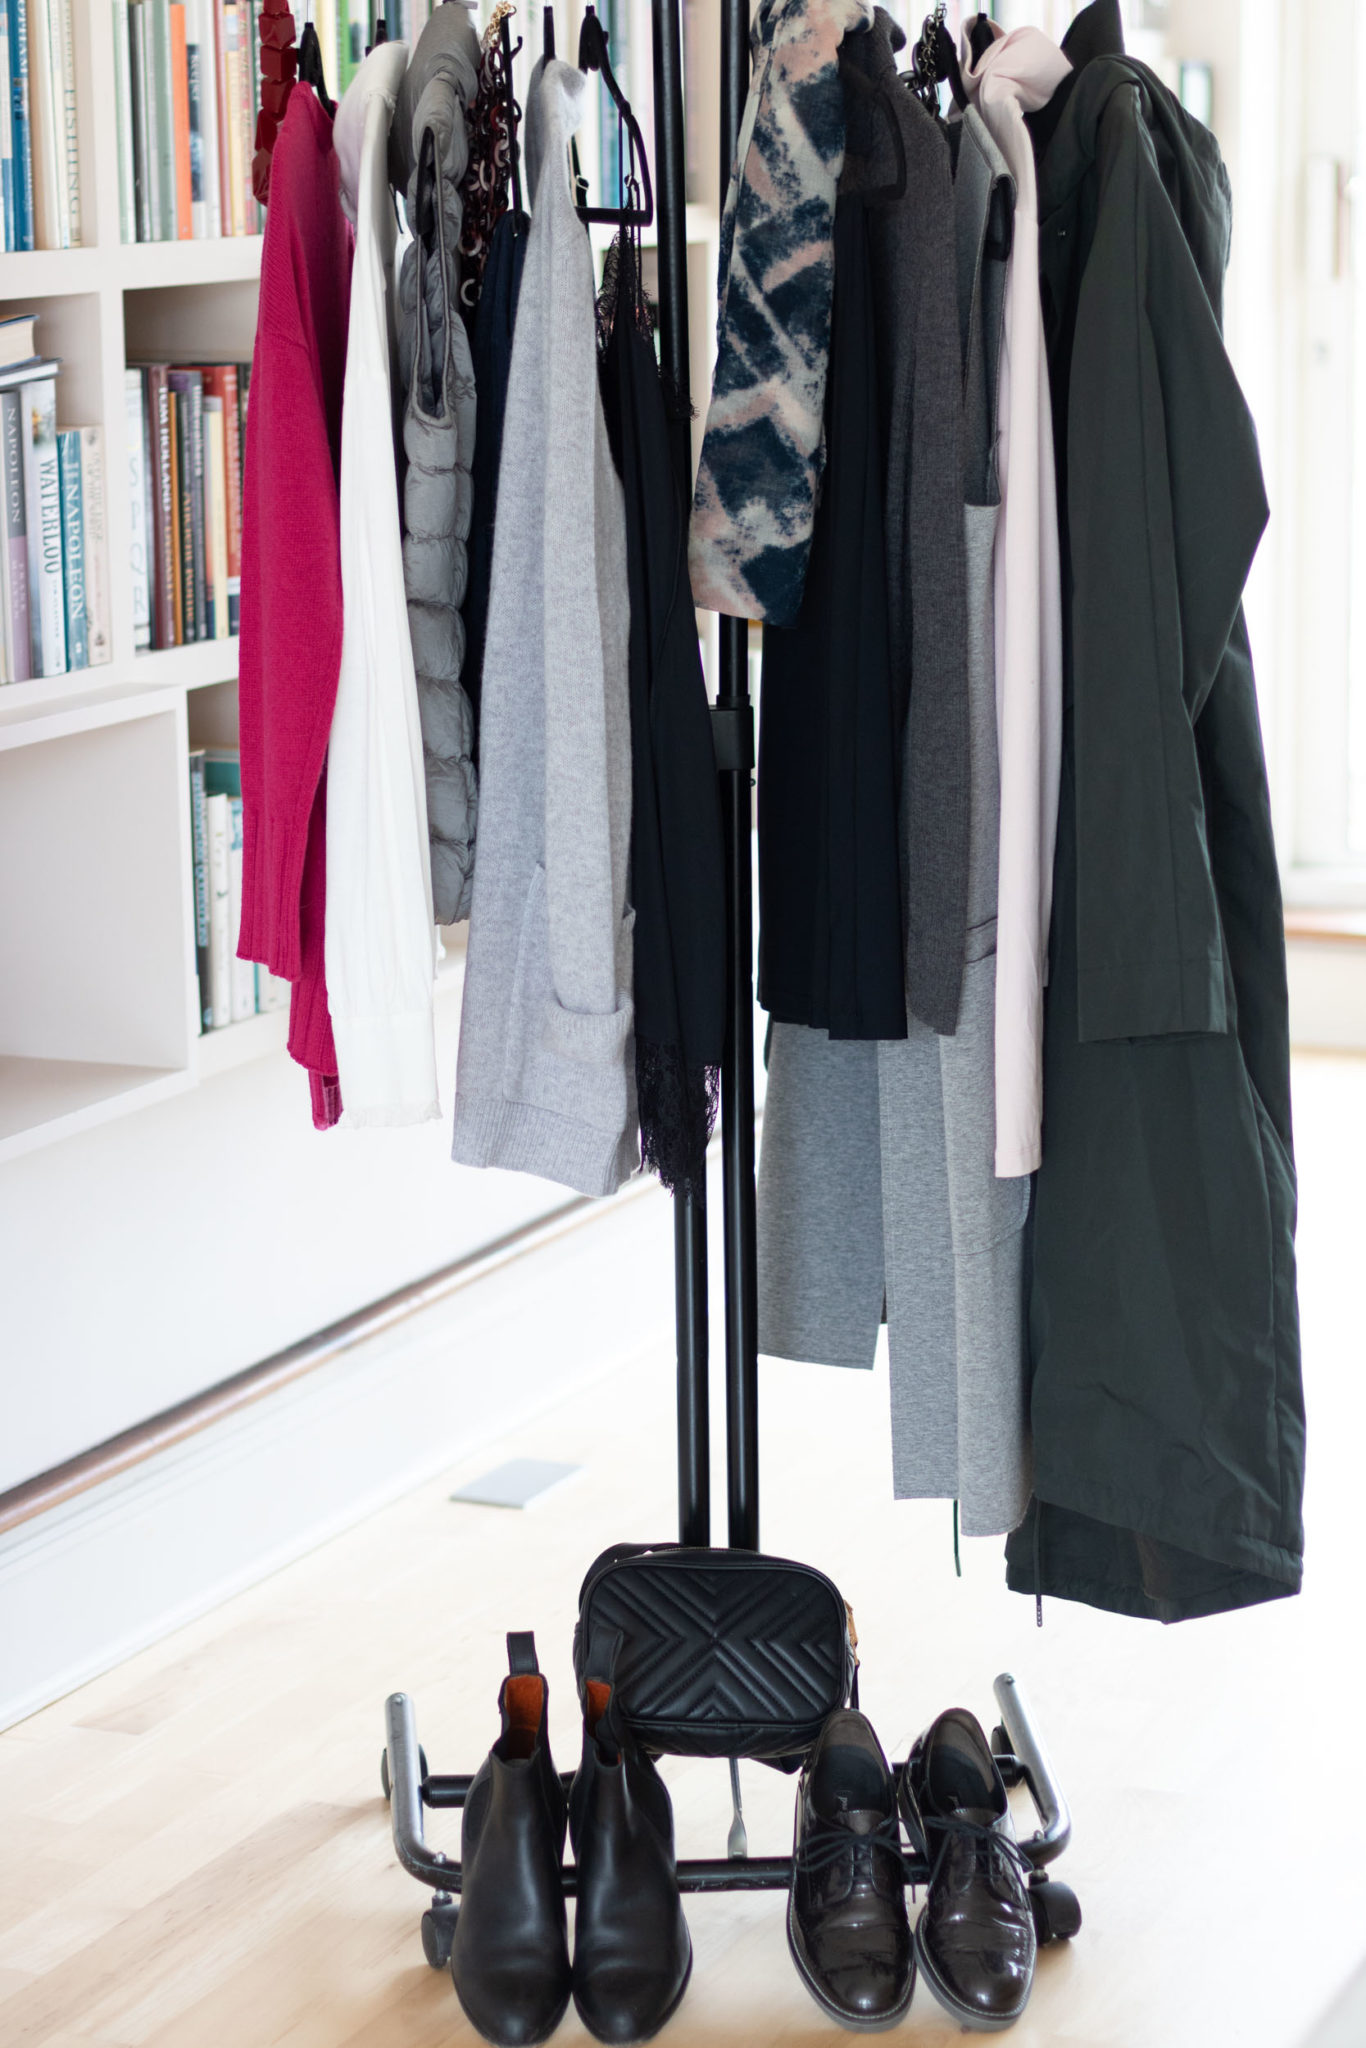 Capsule wardrobe for South of France in October